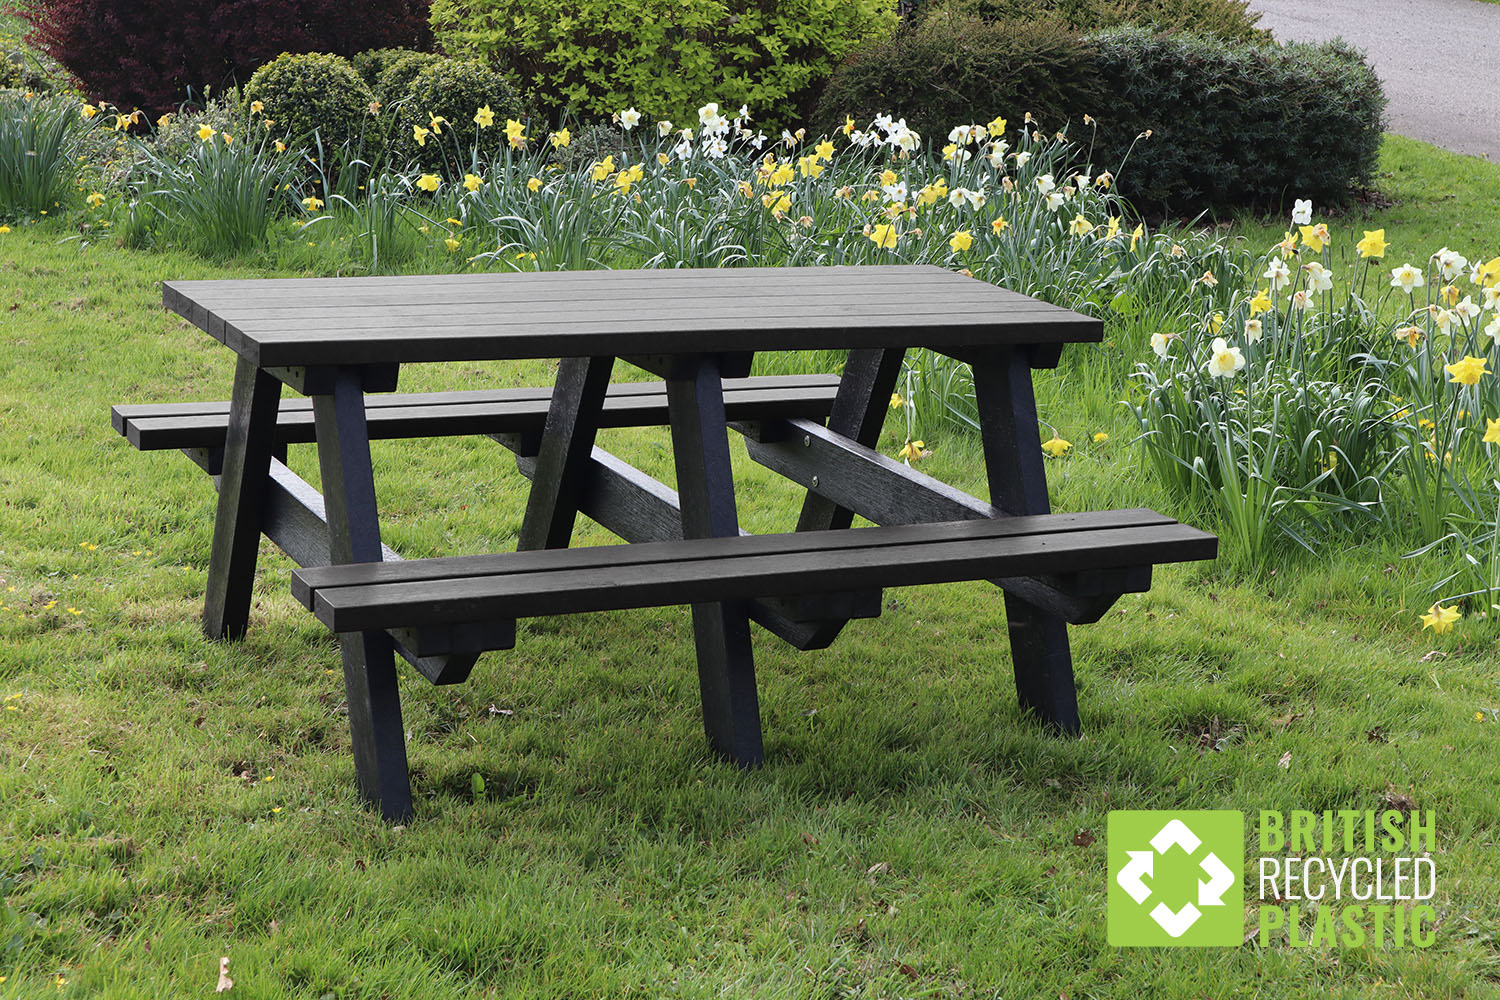 The Denholme Recycled Plastic Bench